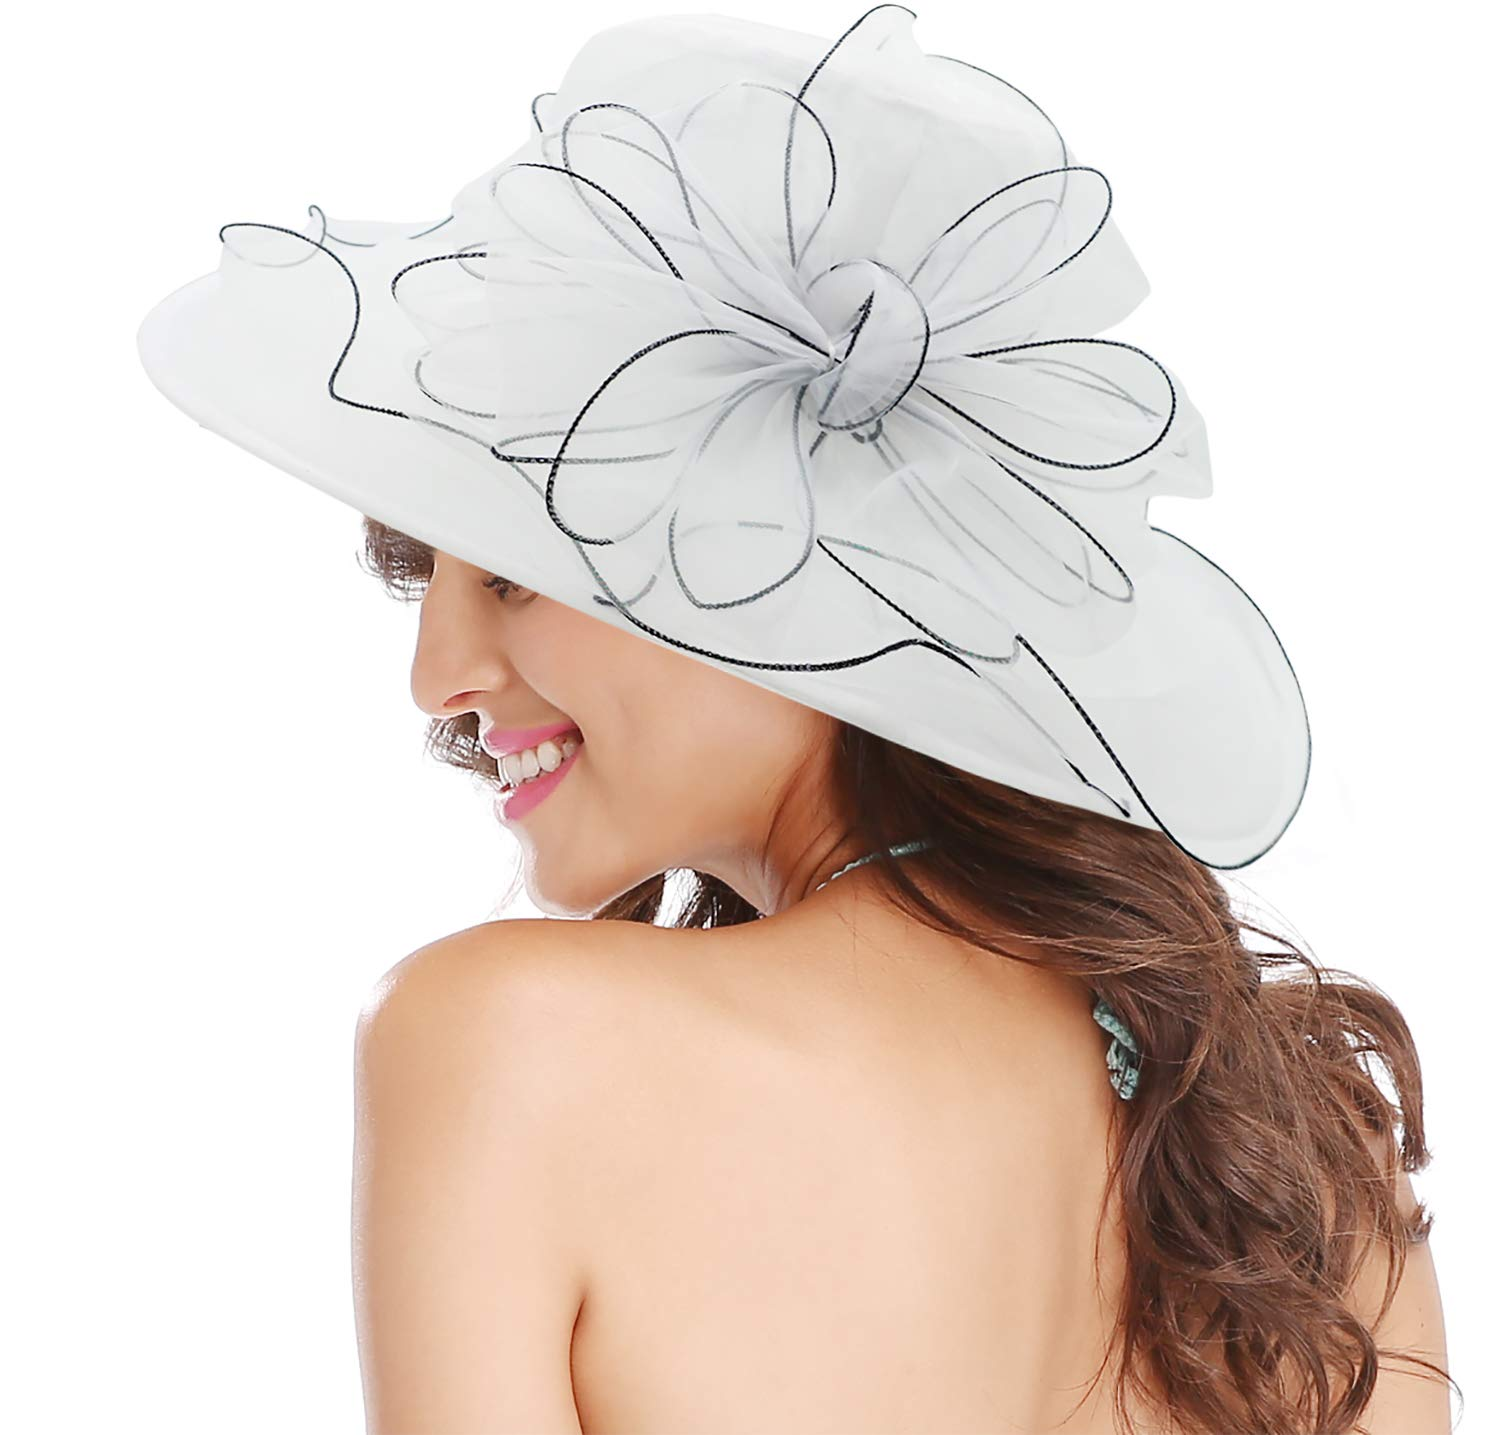 Bellady Women's Church Derby Dress Fascinator Bridal Cap Tea Party Wedding Hat,White Church Hat